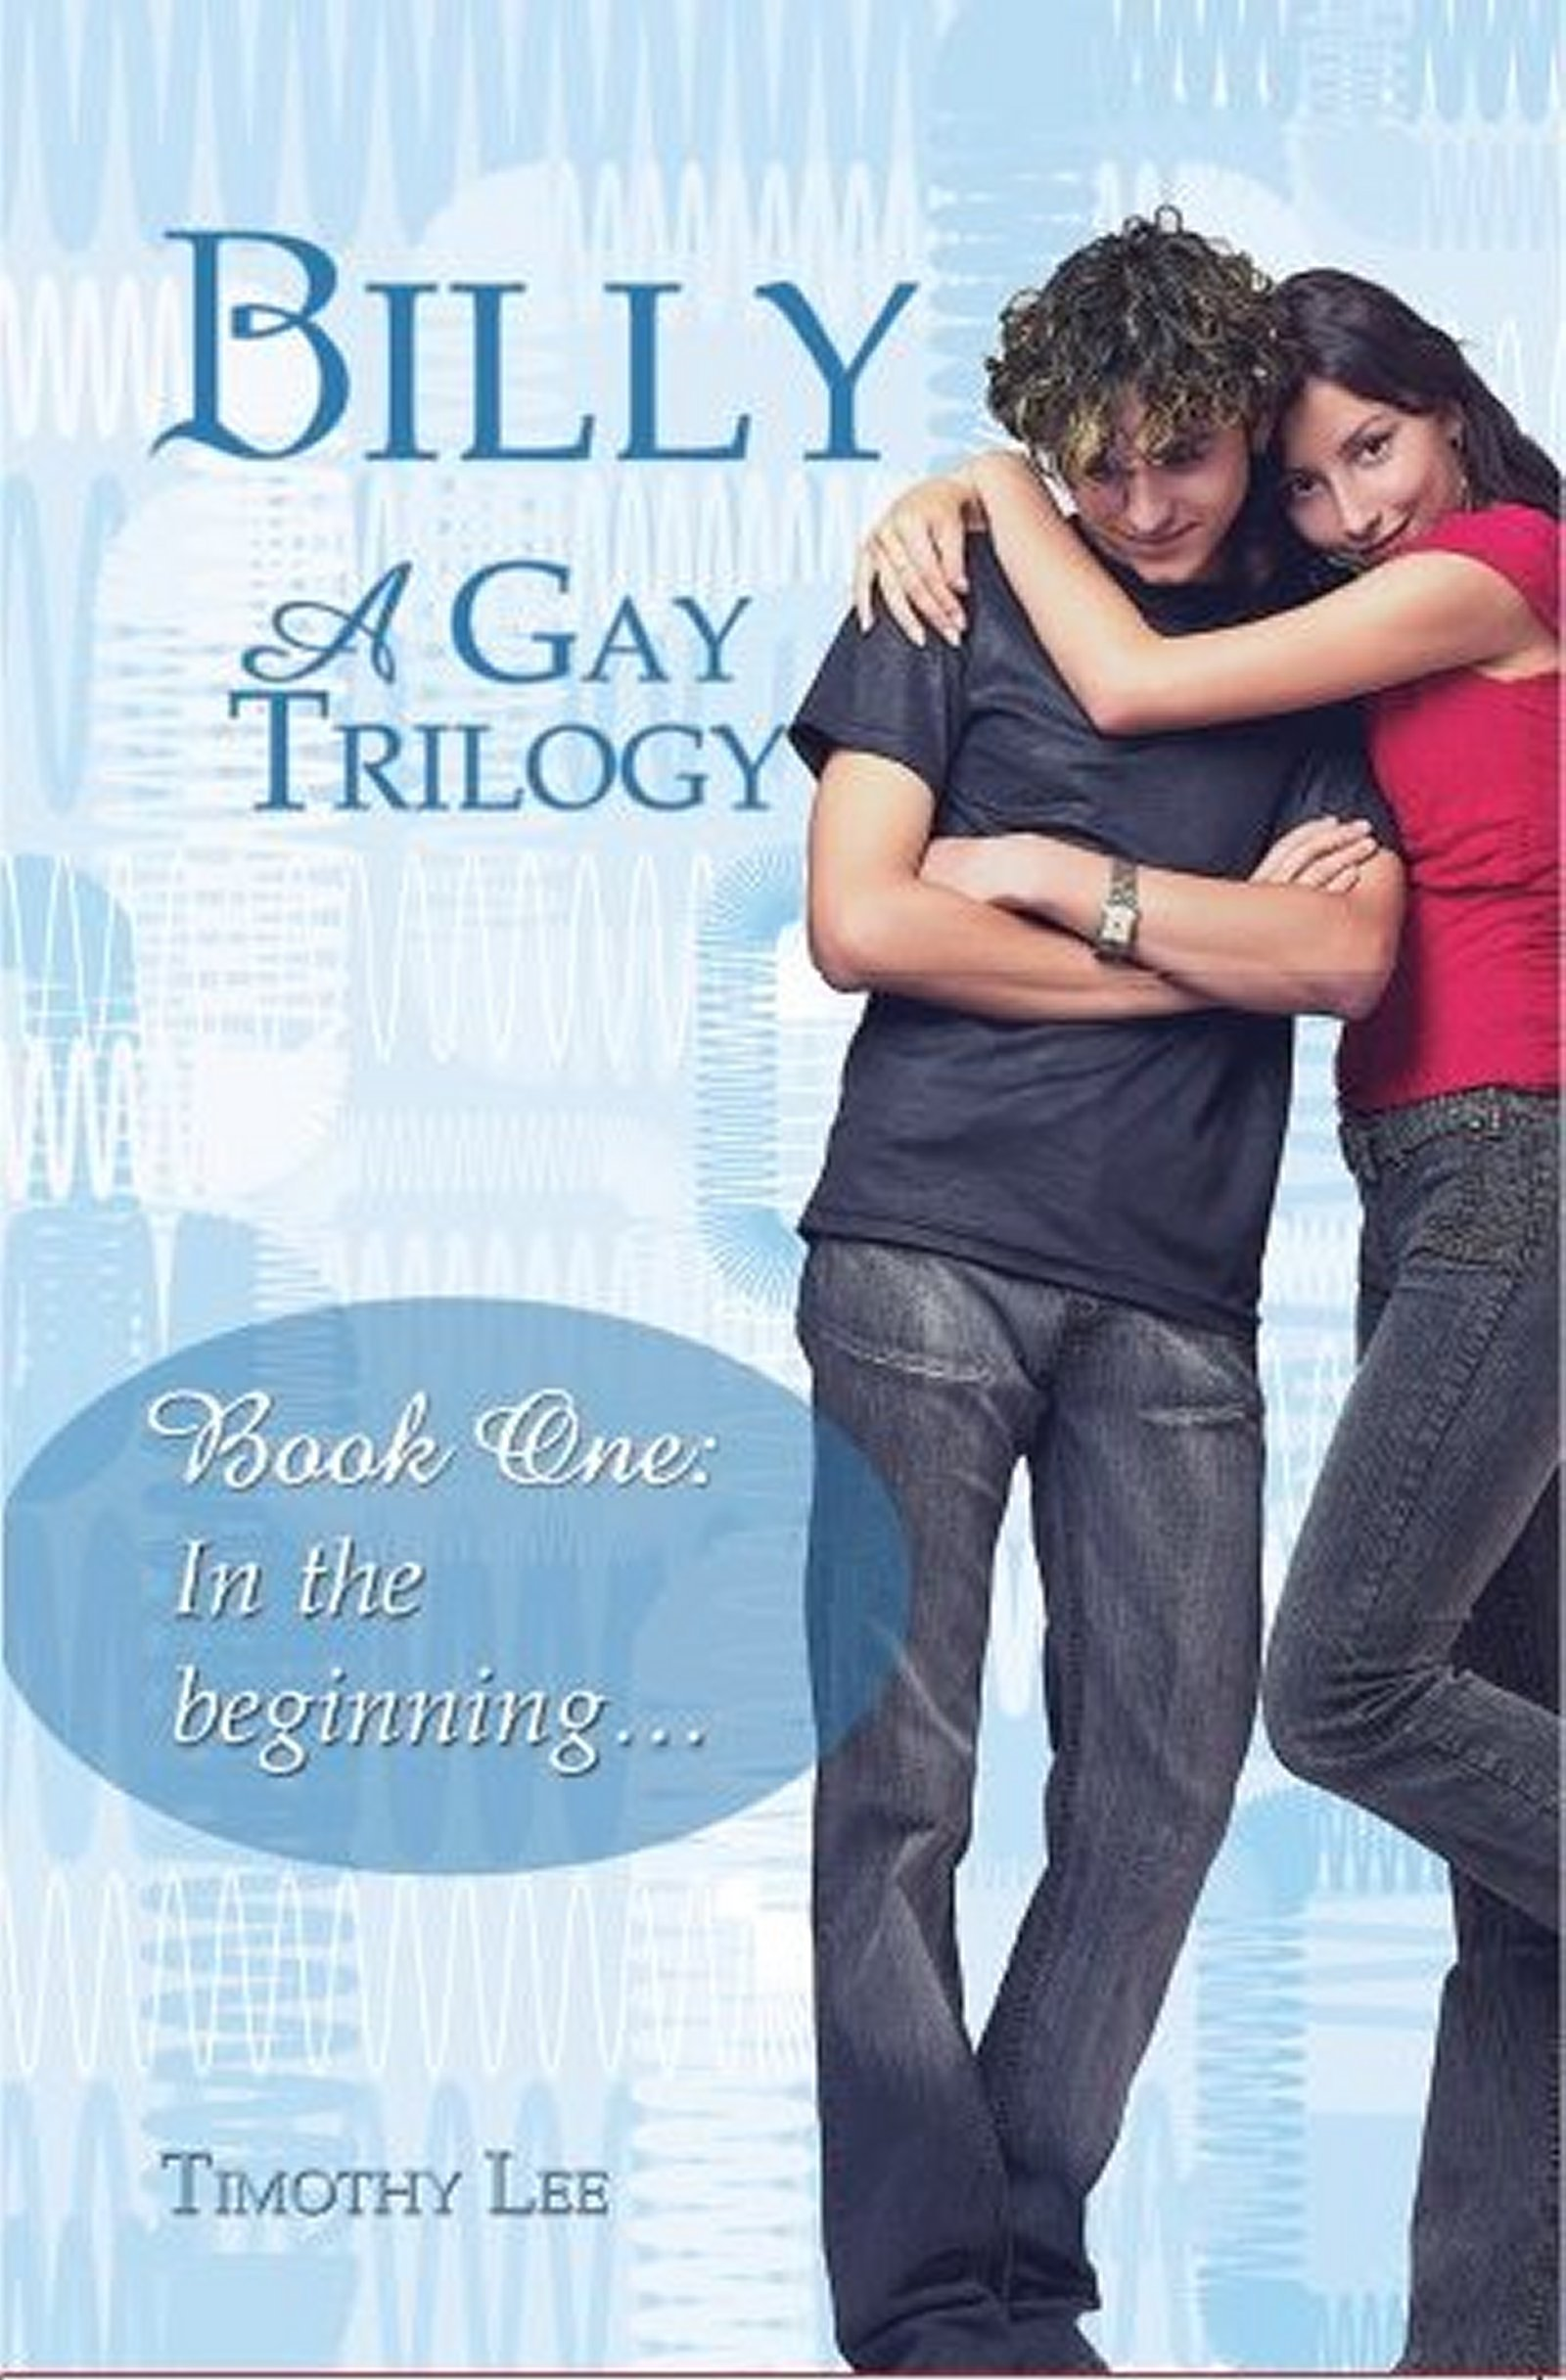 In The Beginning: Billy: A Gay Trilogy - Book One